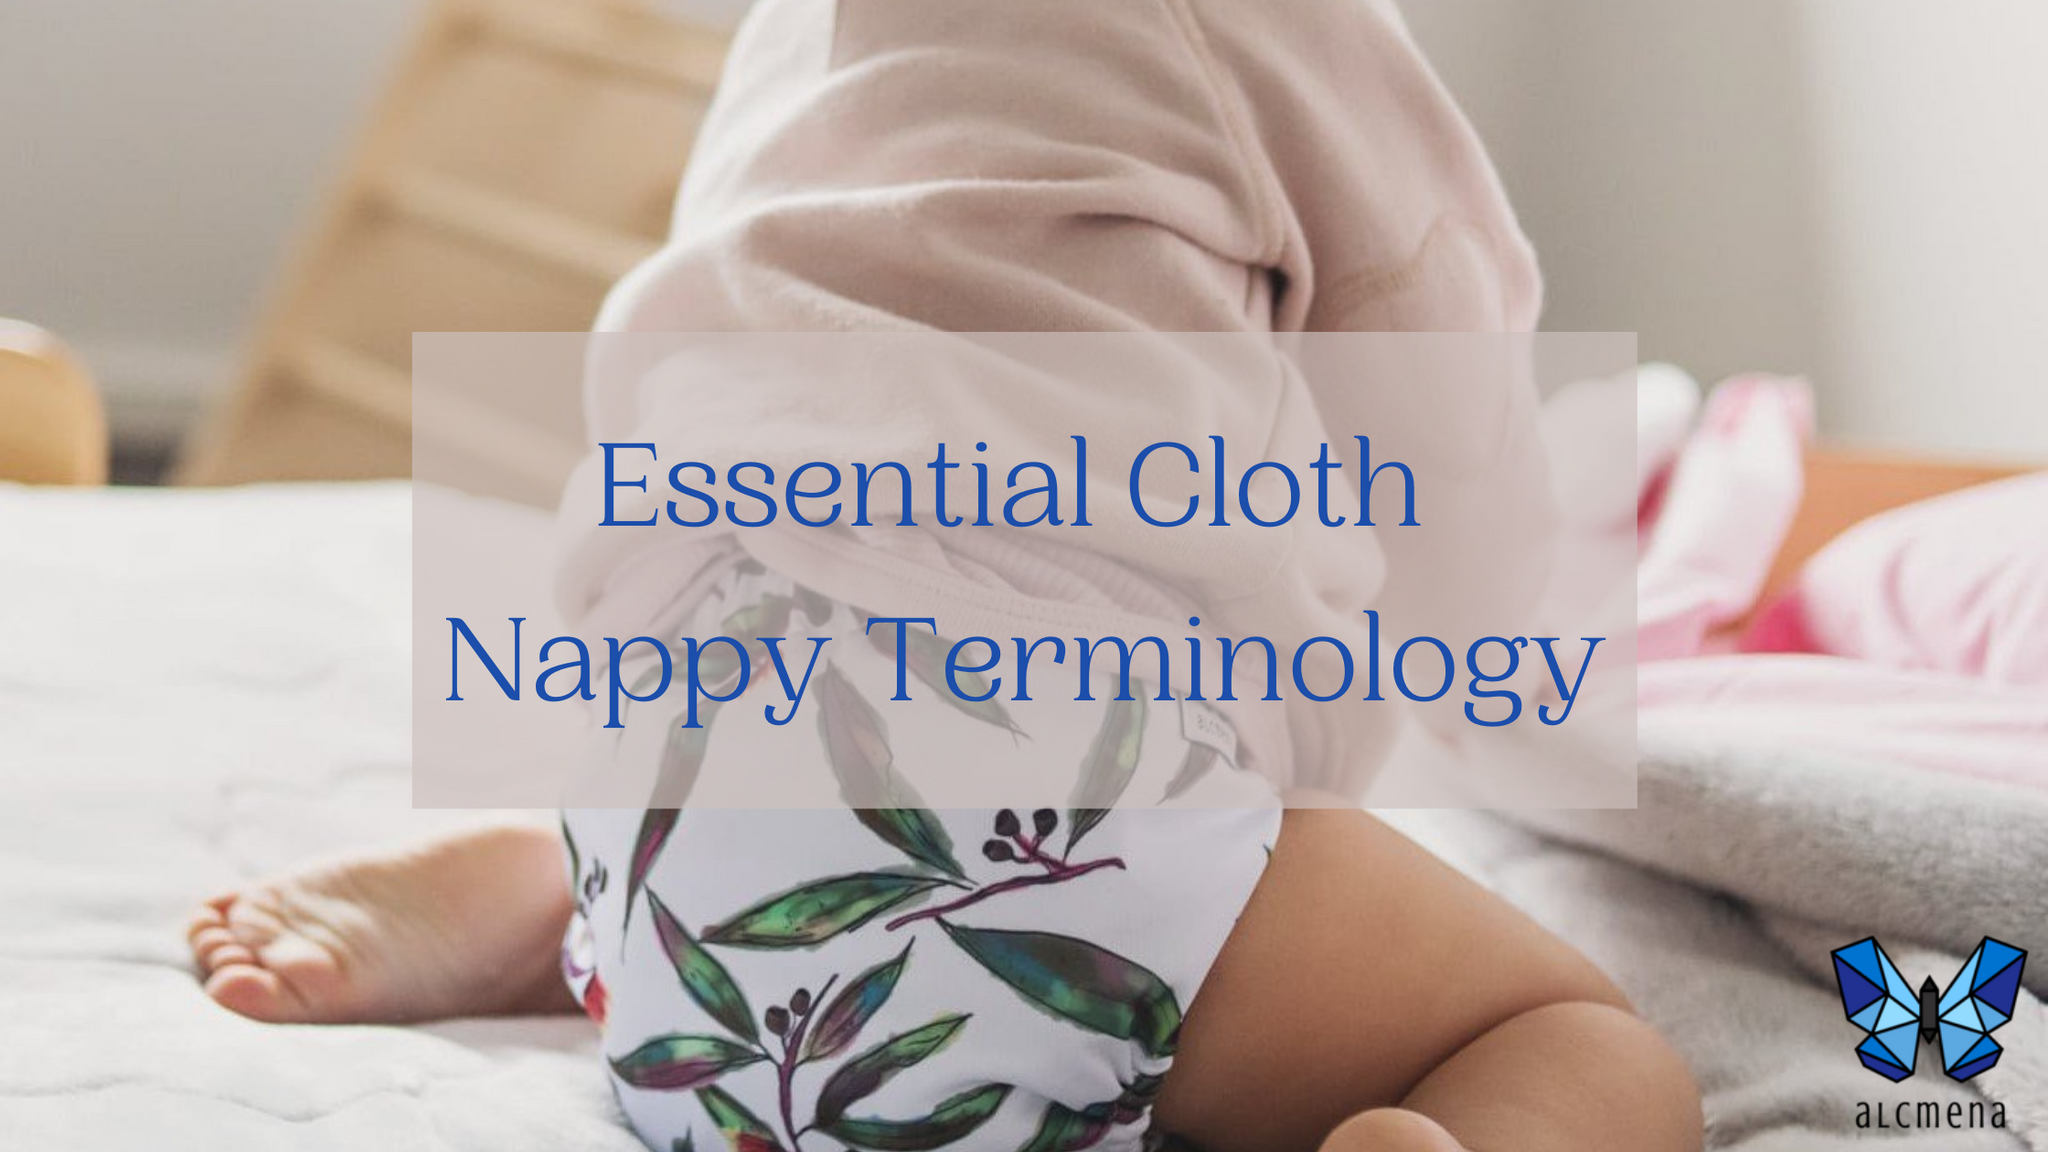 your essential cloth nappy terminology